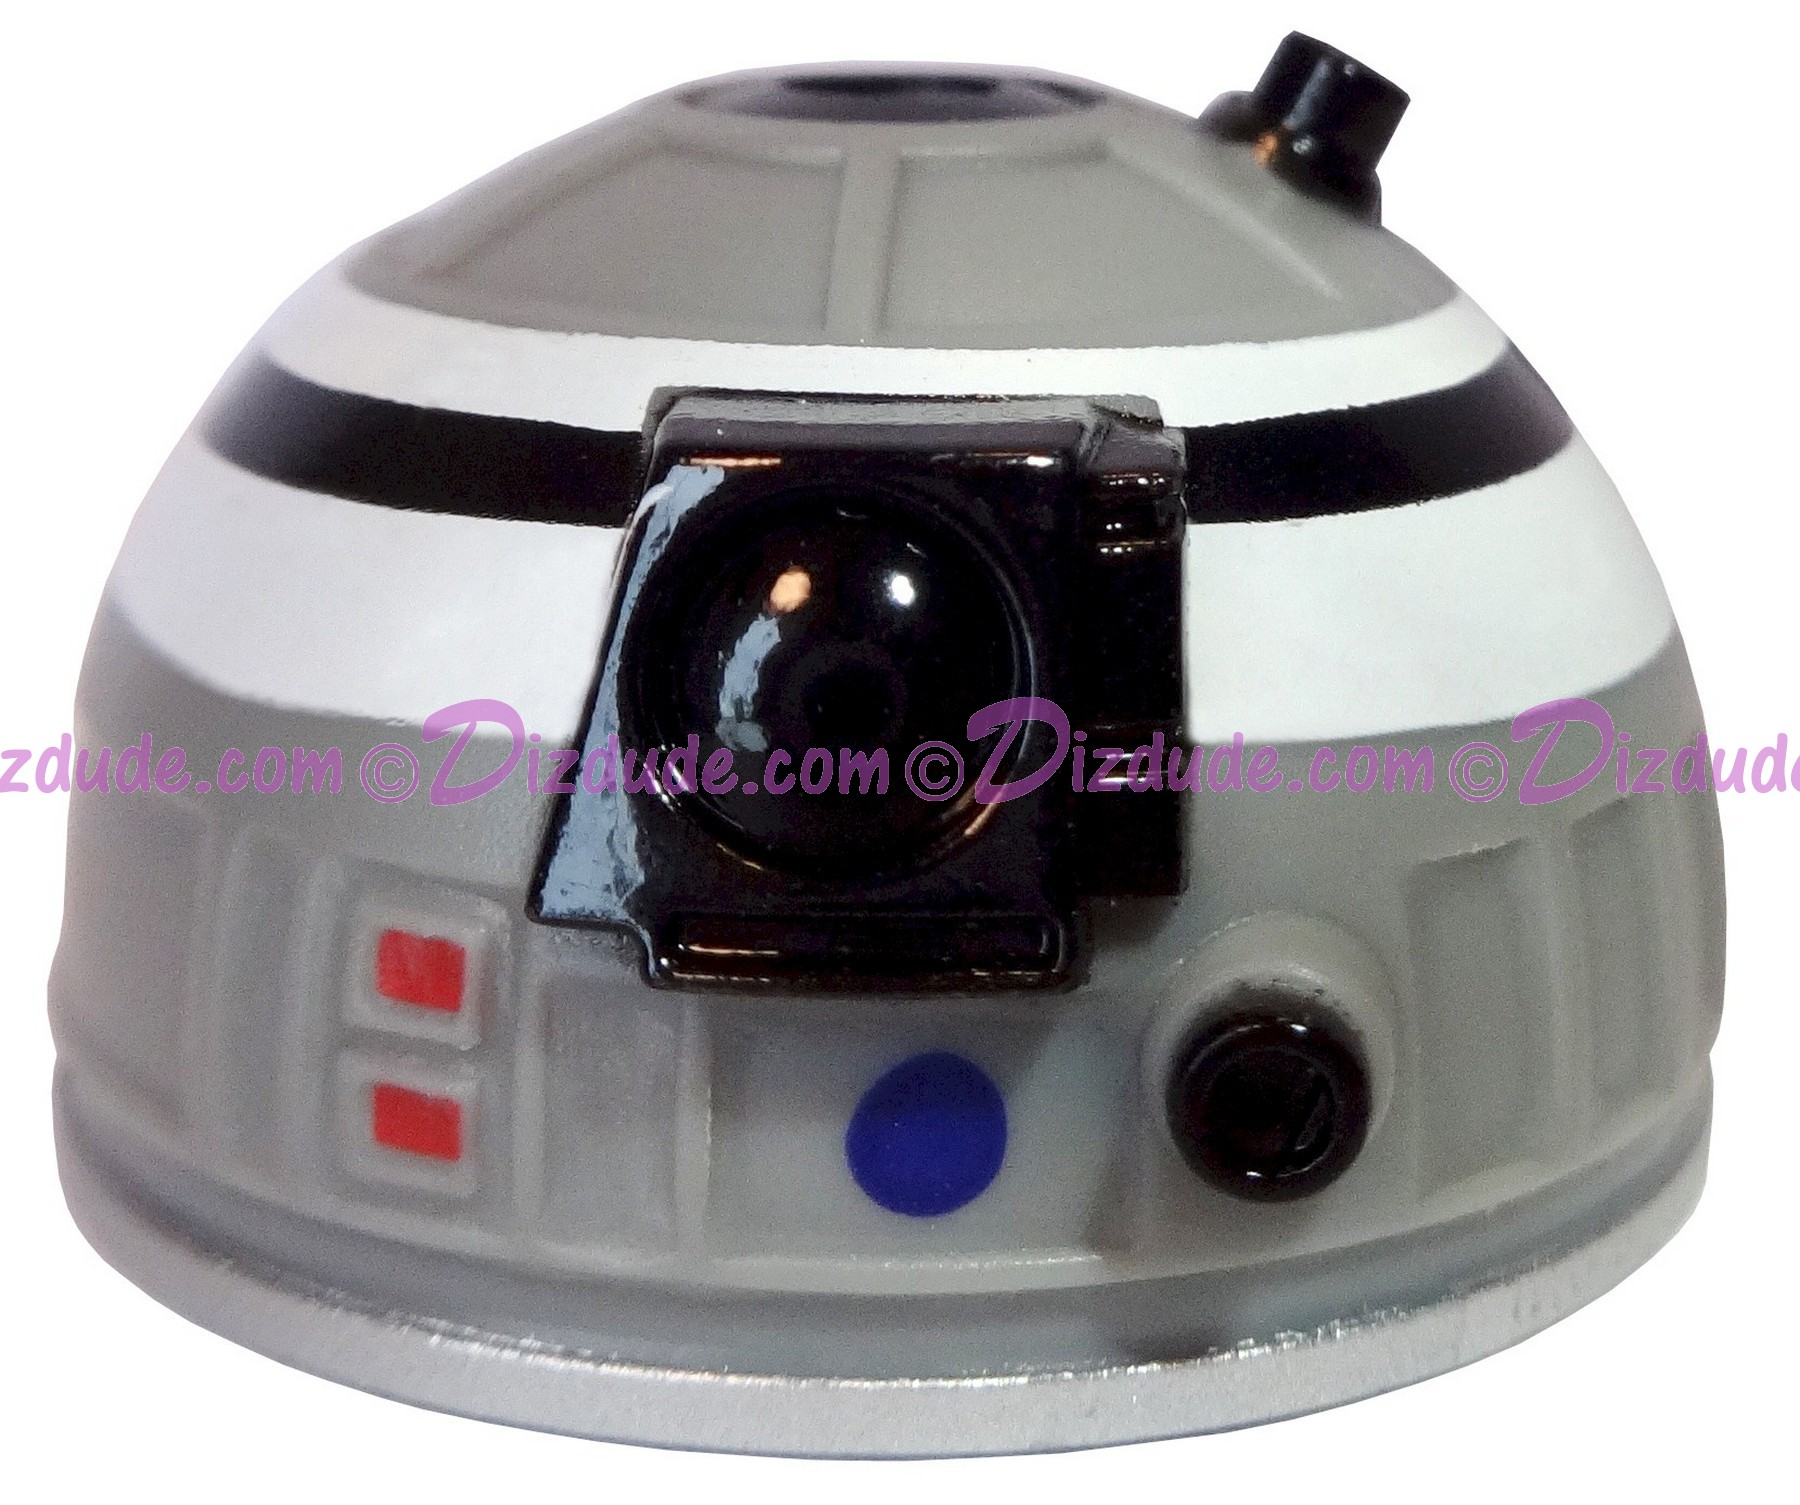 Gray White & Black Astromech Droid Dome ~ Series 2 from Disney Star Wars Build-A-Droid Factory © Dizdude.com